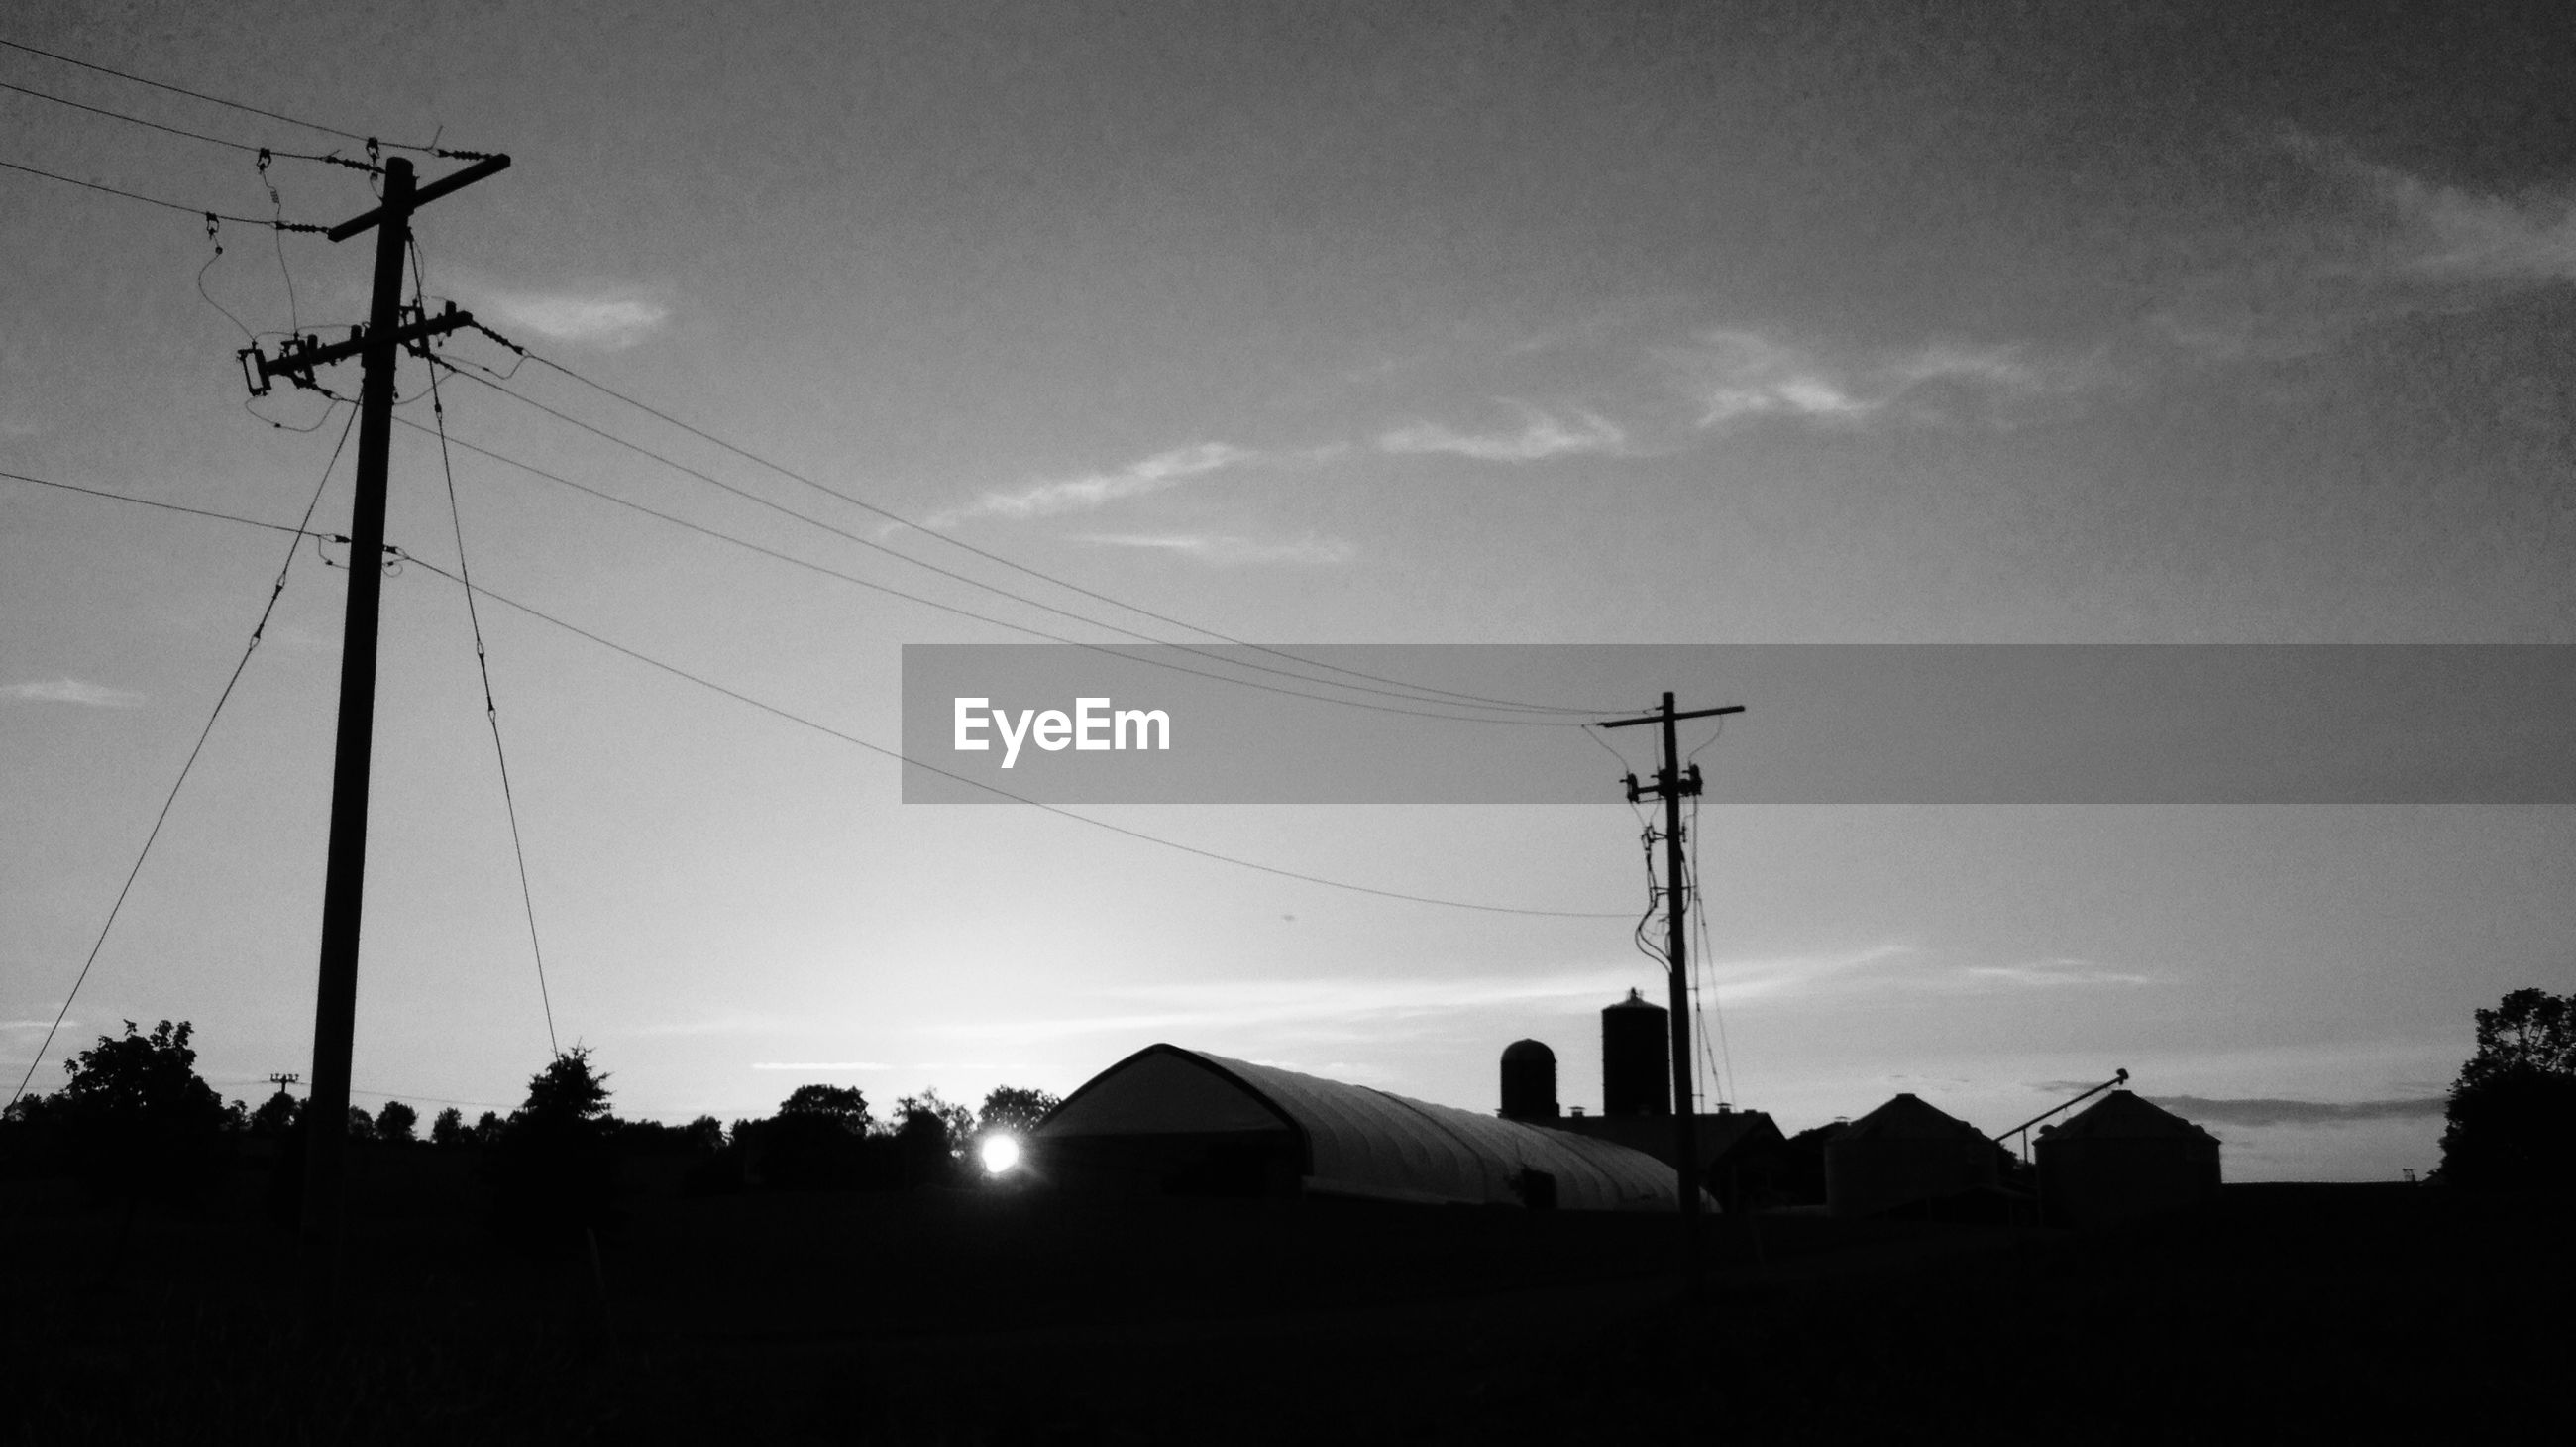 cable, connection, electricity, power line, electricity pylon, power supply, sky, silhouette, no people, technology, fuel and power generation, outdoors, low angle view, day, nature